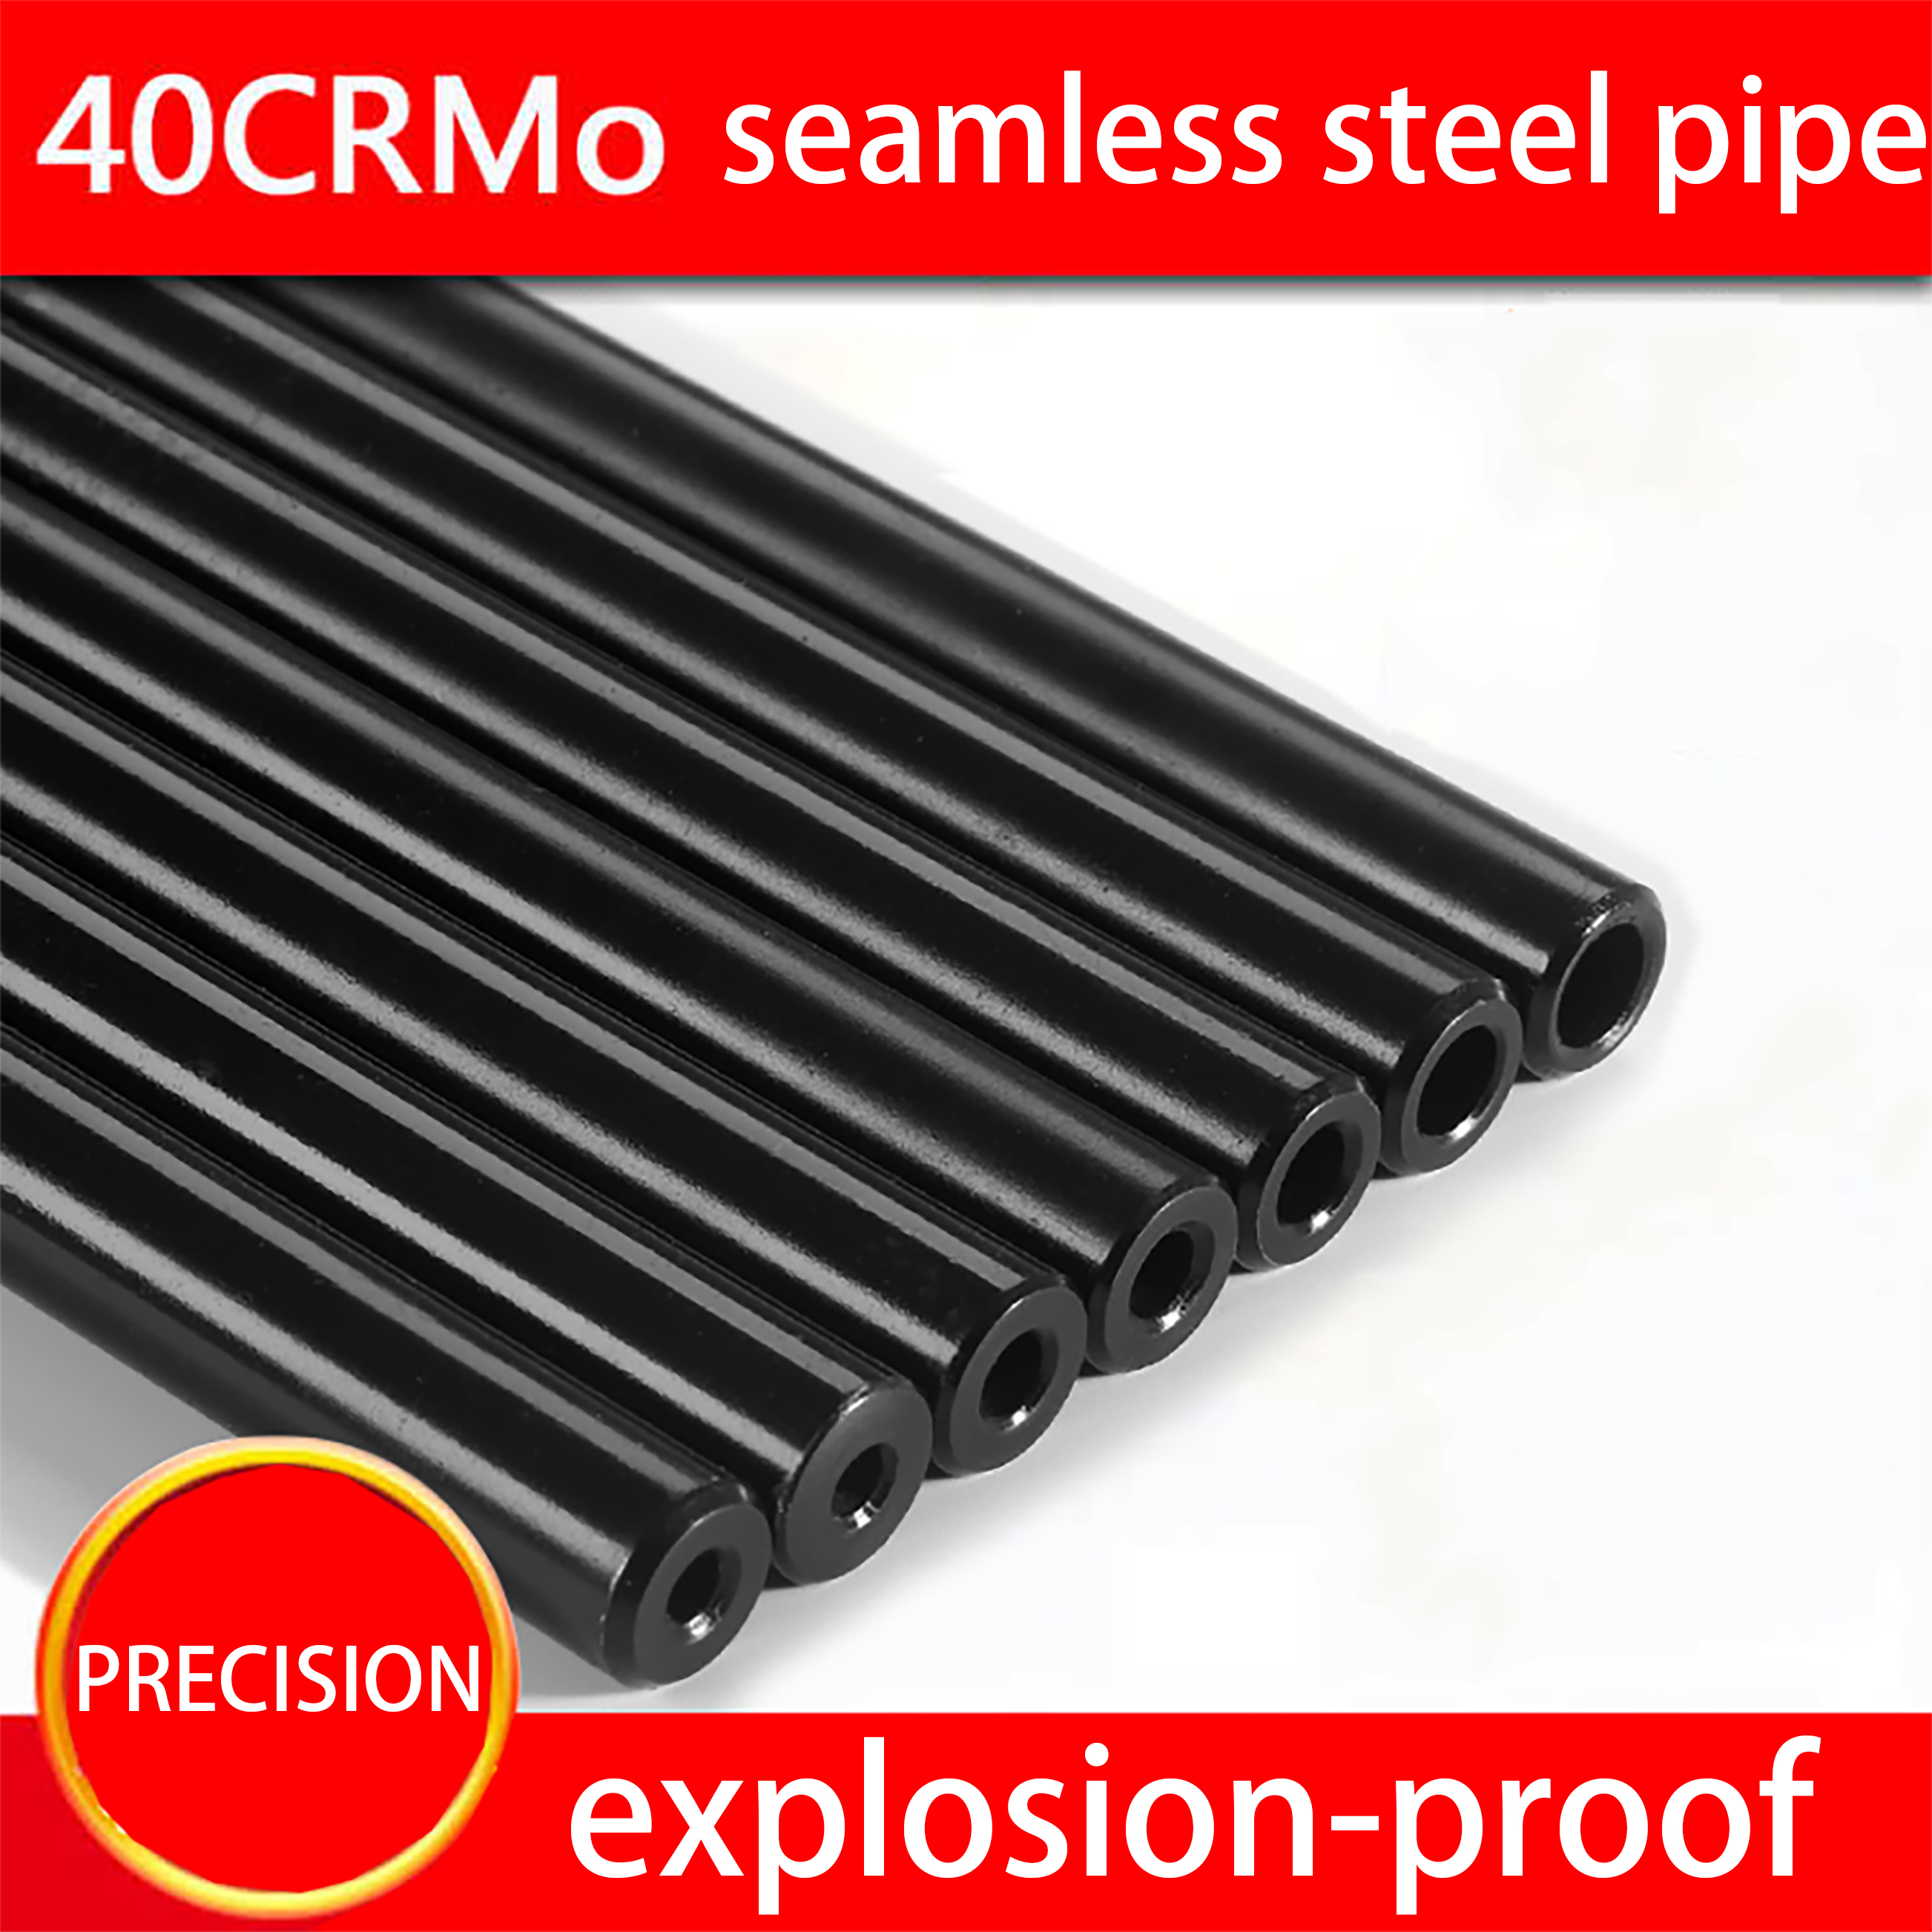 OD16 Hydraulic Tube Alloy Seamless Precision  Explosion-proof Pipe For Home Diy Tool Parts